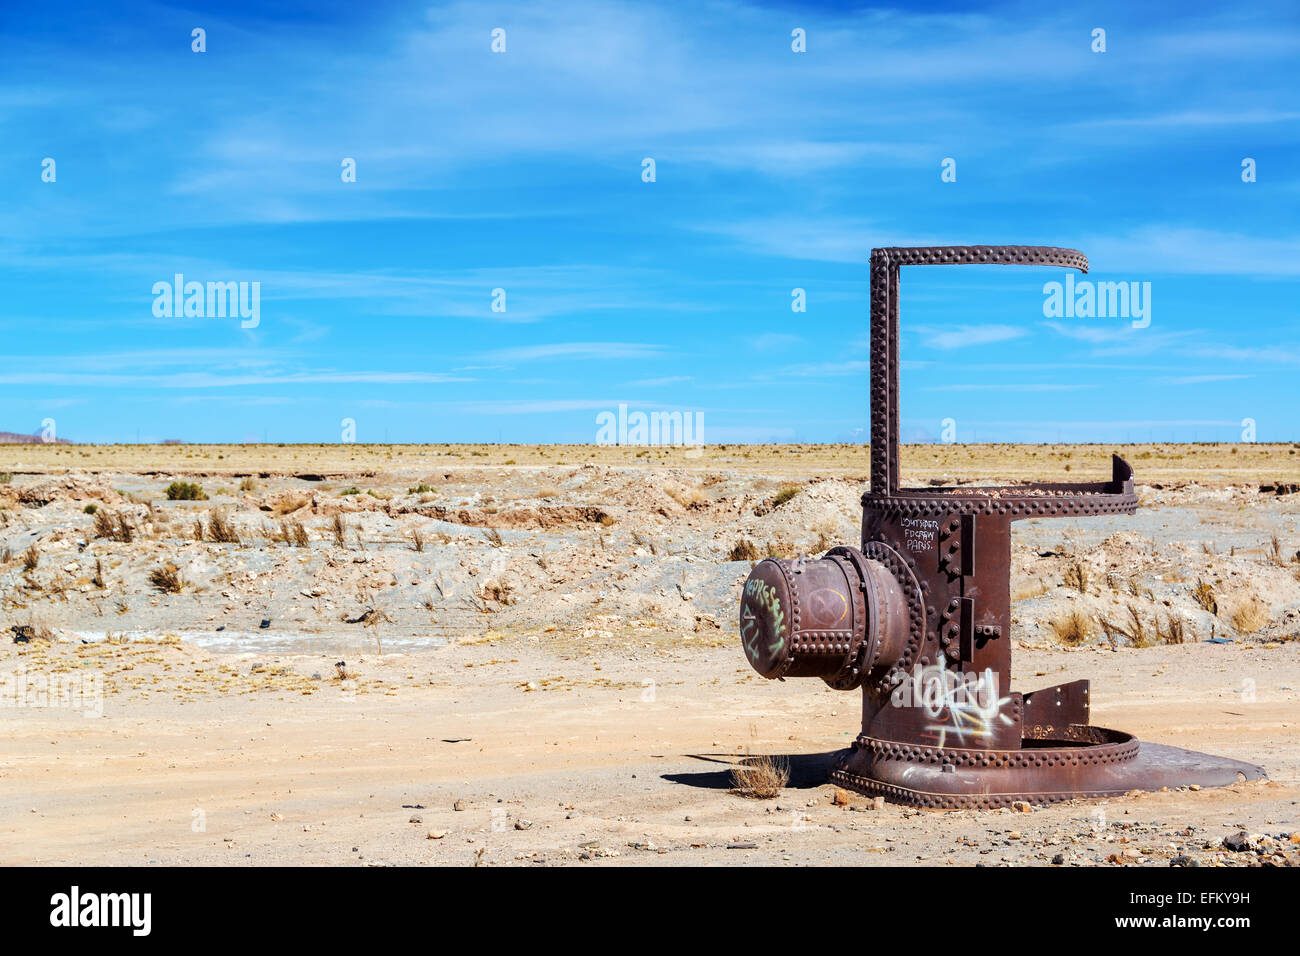 Remains of a train in the Train Cemetery in Uyuni, Bolivia Stock Photo